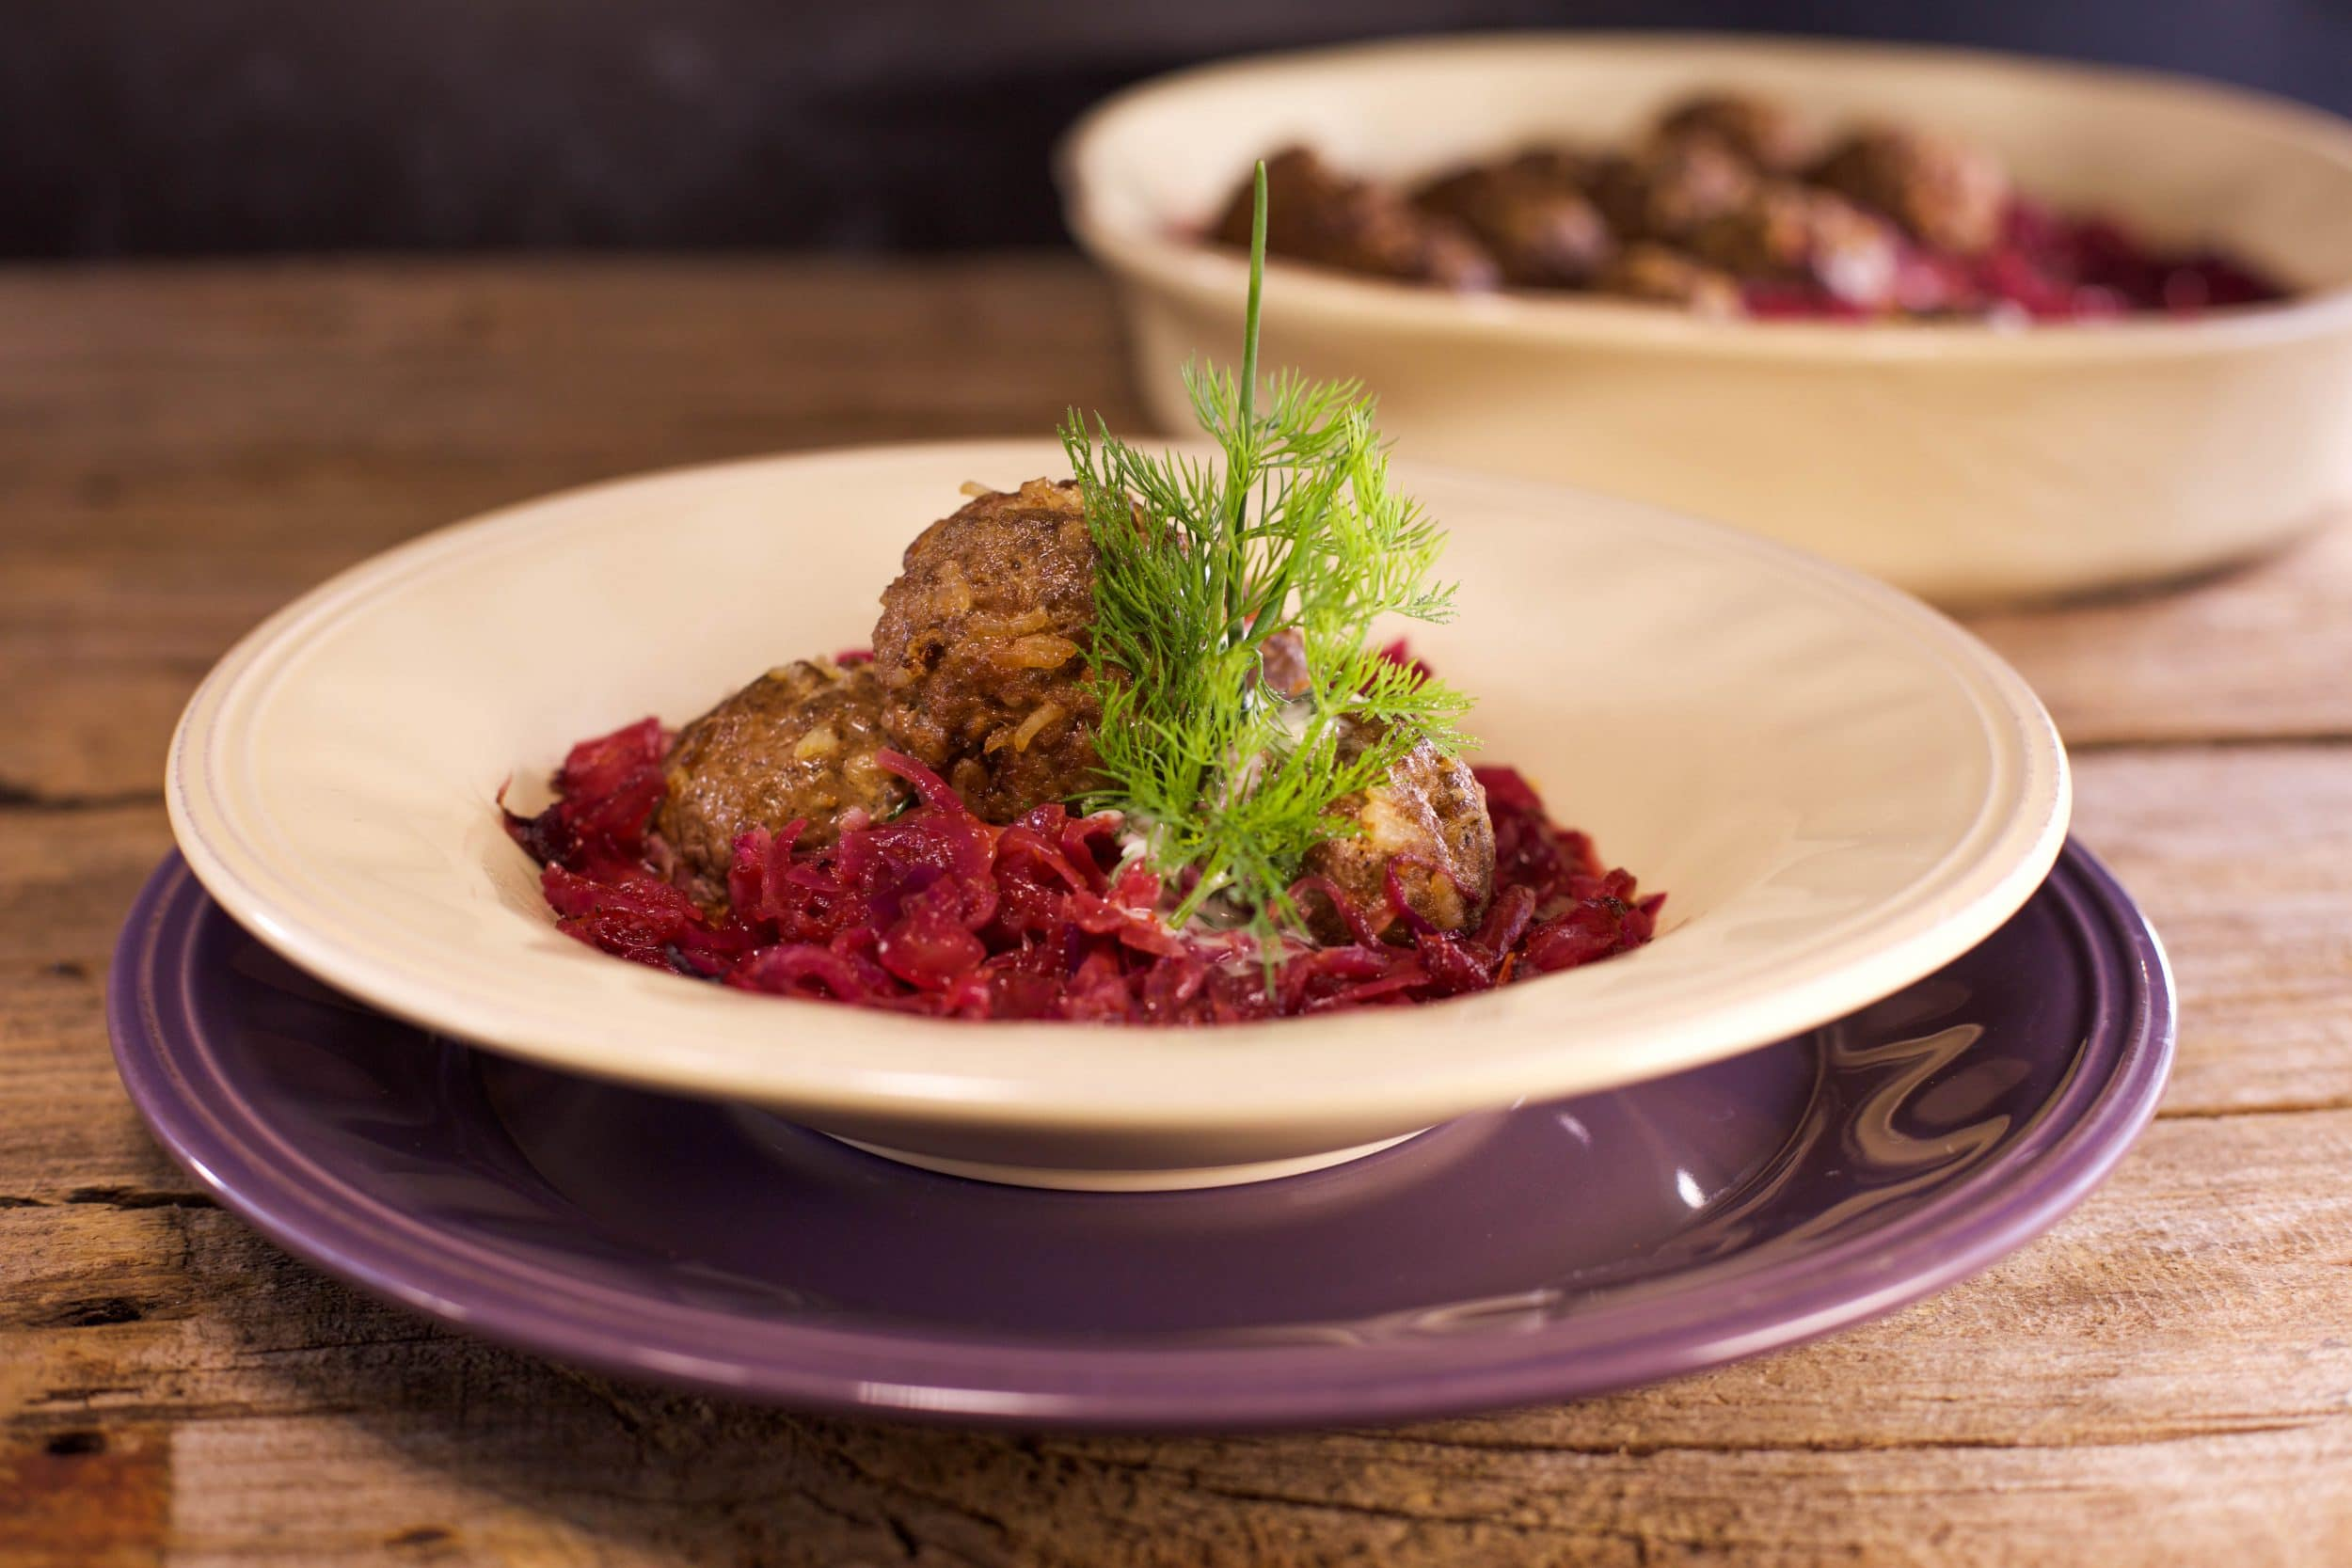 Sweet and Sour Cabbage with Meatballs